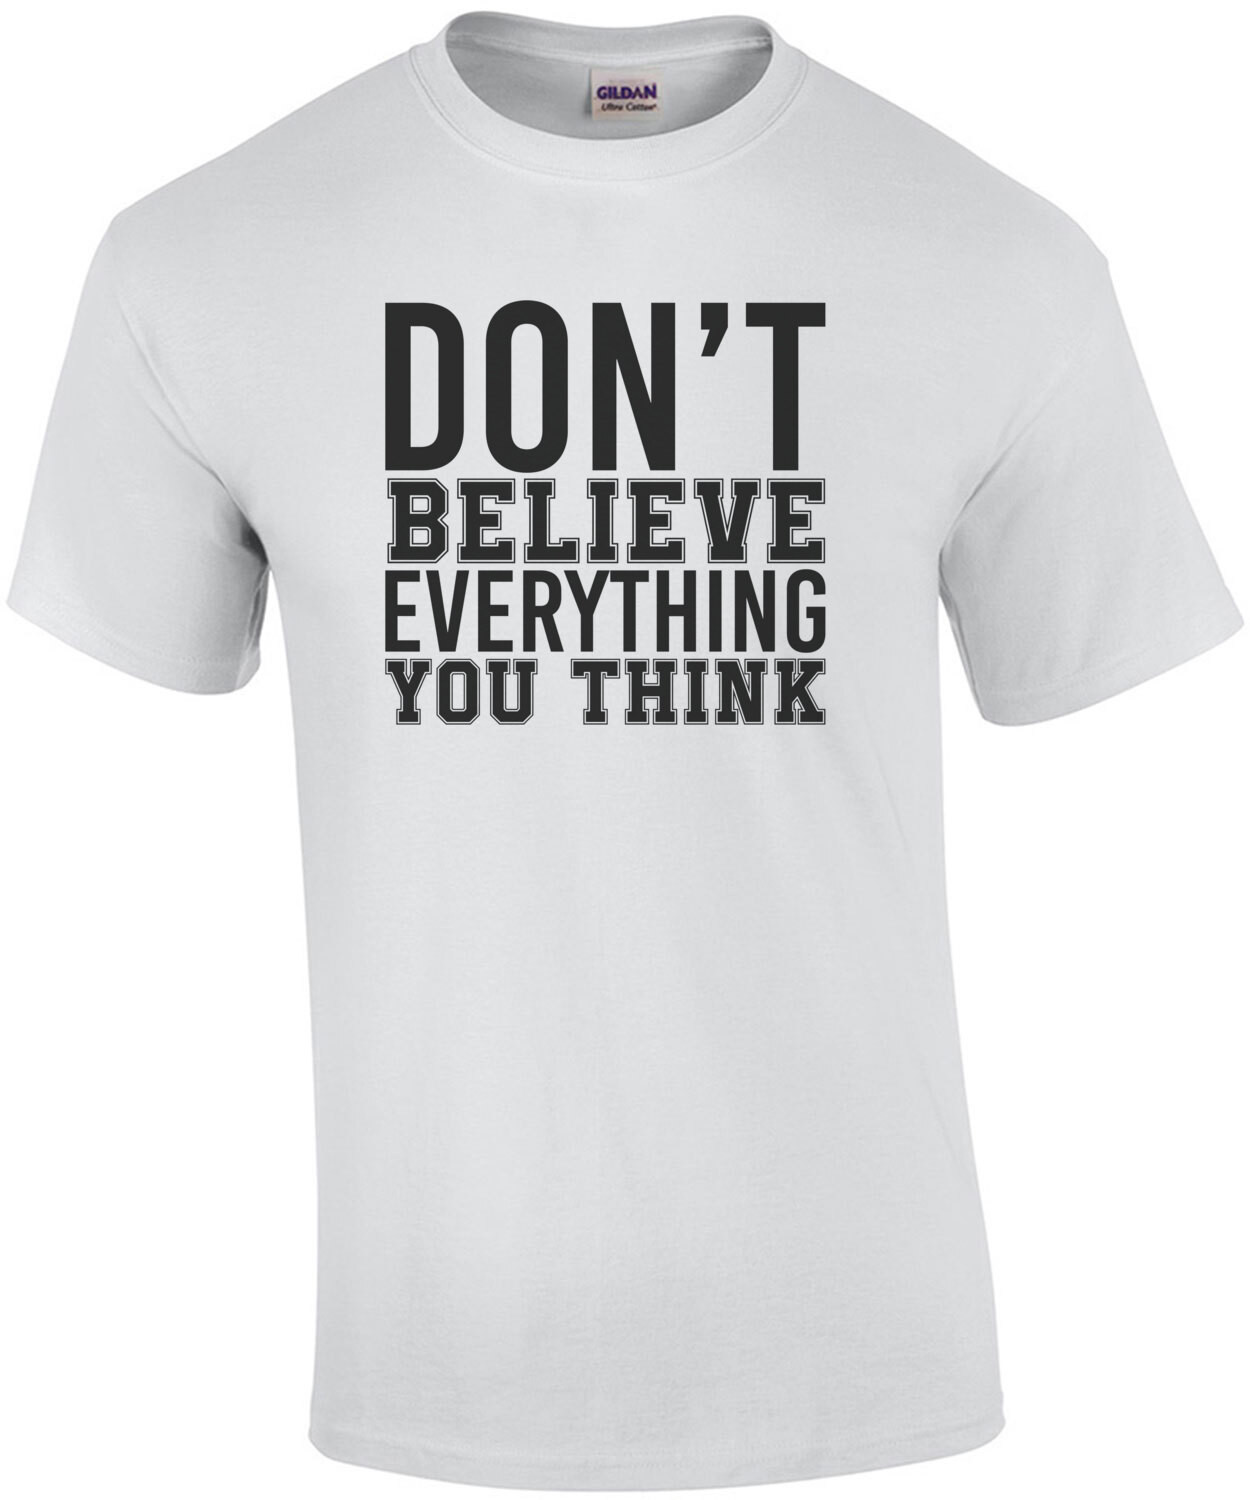 Don't believe everything you think - funny t-shirt